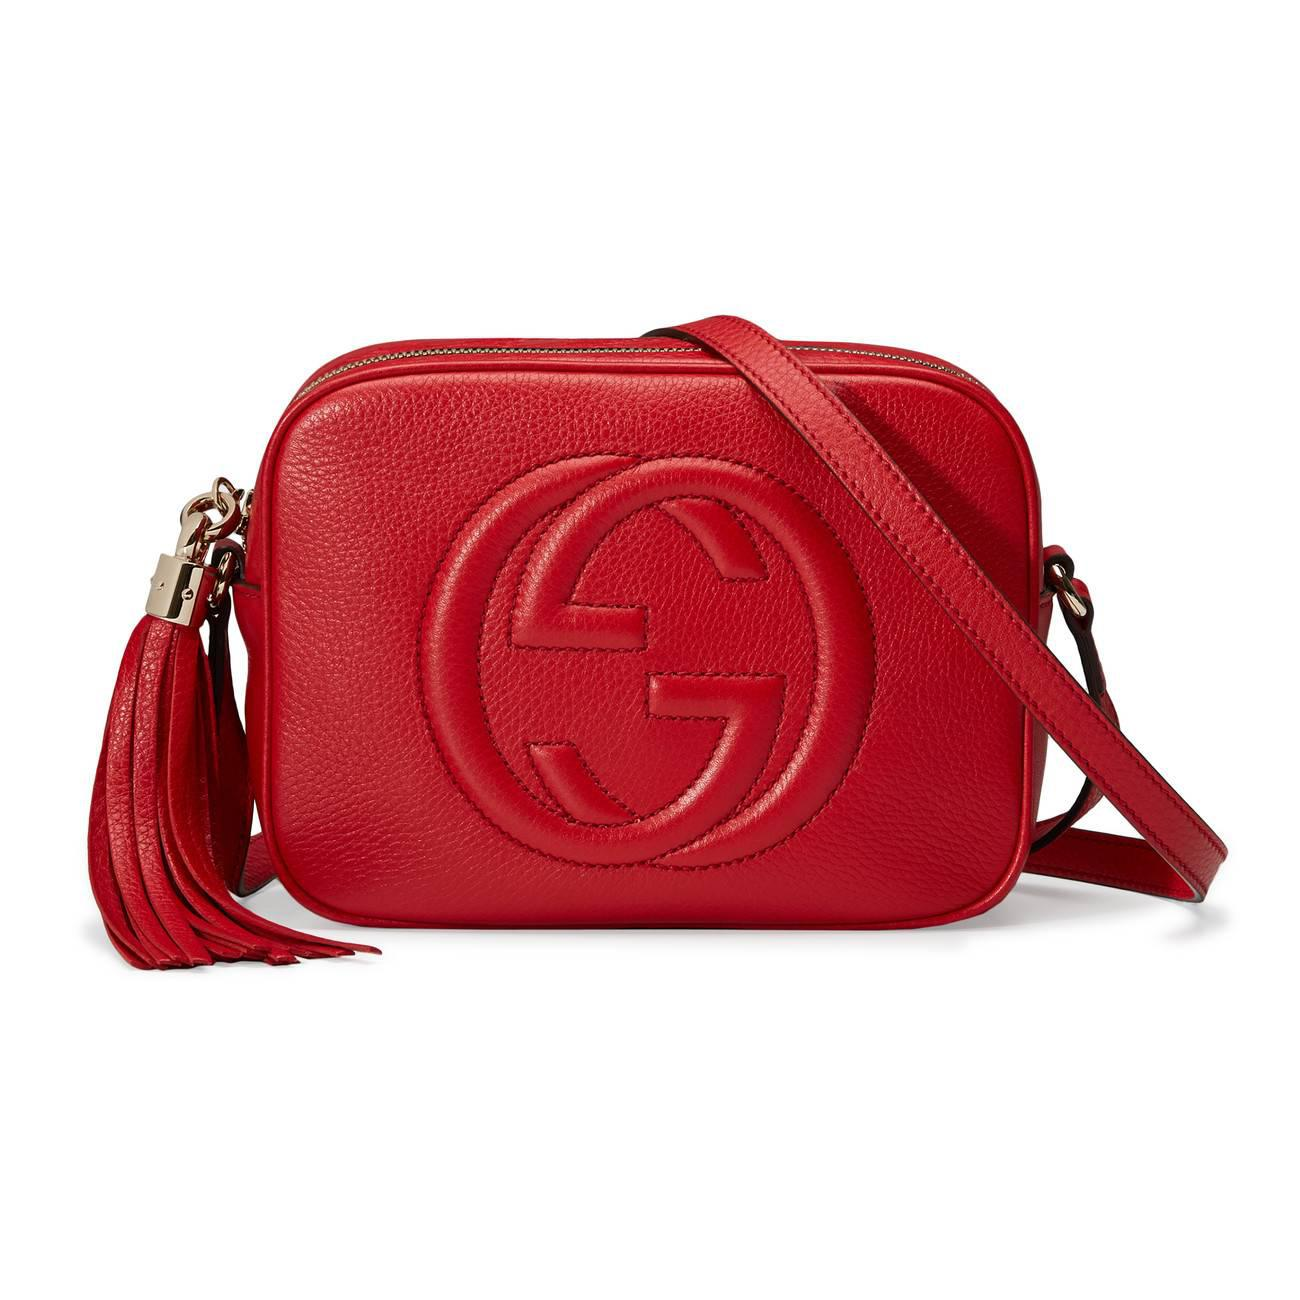 90efbd6aca0c Lyst - Gucci Soho Small Leather Disco Bag in Red - Save ...